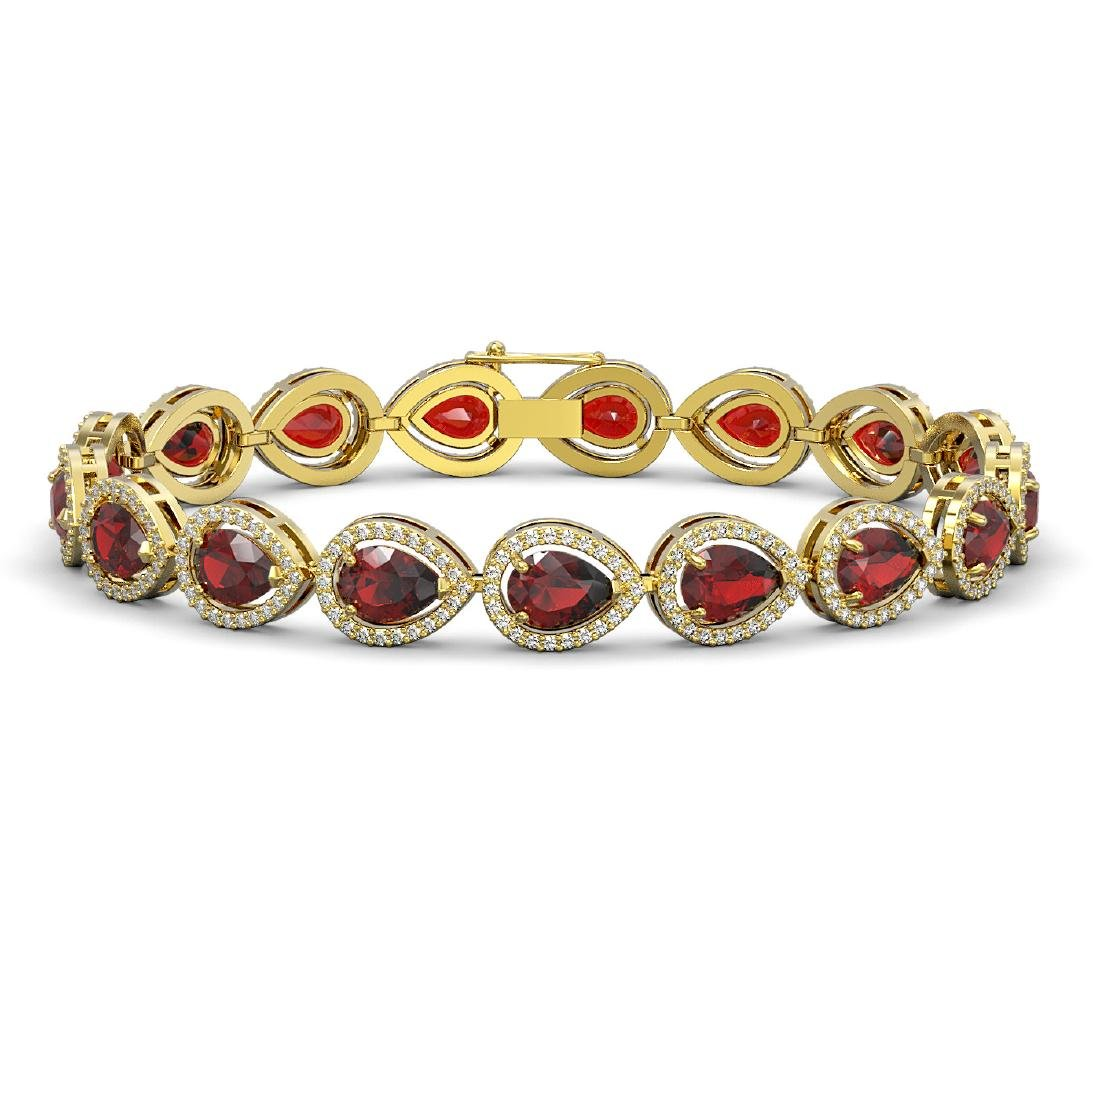 17.44 CTW Garnet & Diamond Halo Bracelet 10K Yellow